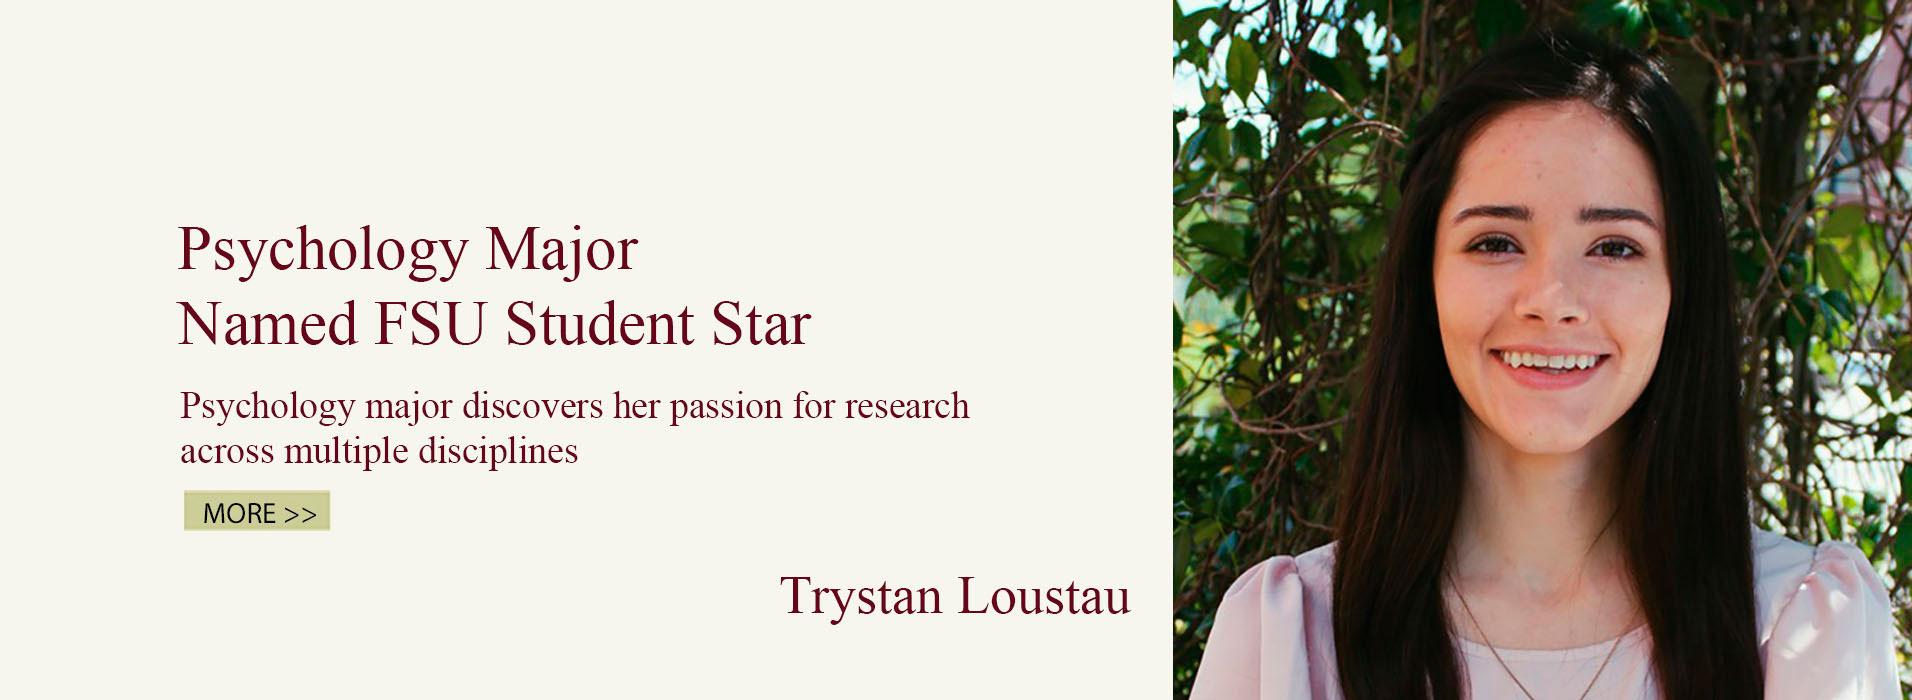 Psychology Major Named FSU Student Star